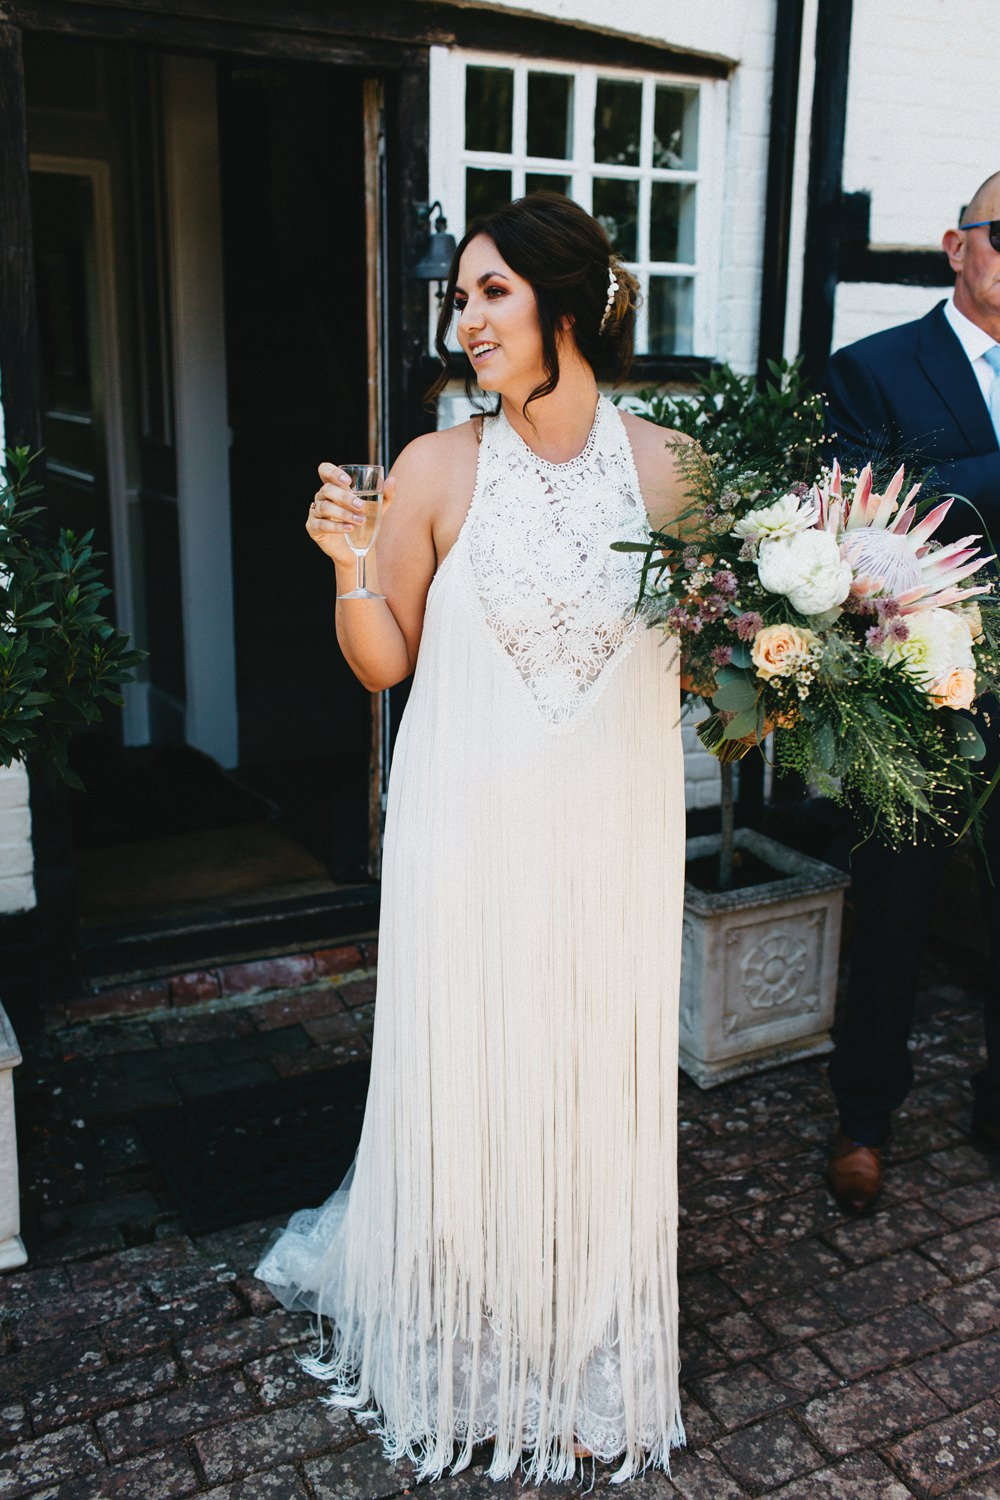 d5fd4d24d2c Fringed Wedding Dress By Yolan Cris    Image By Jason Williams Photography